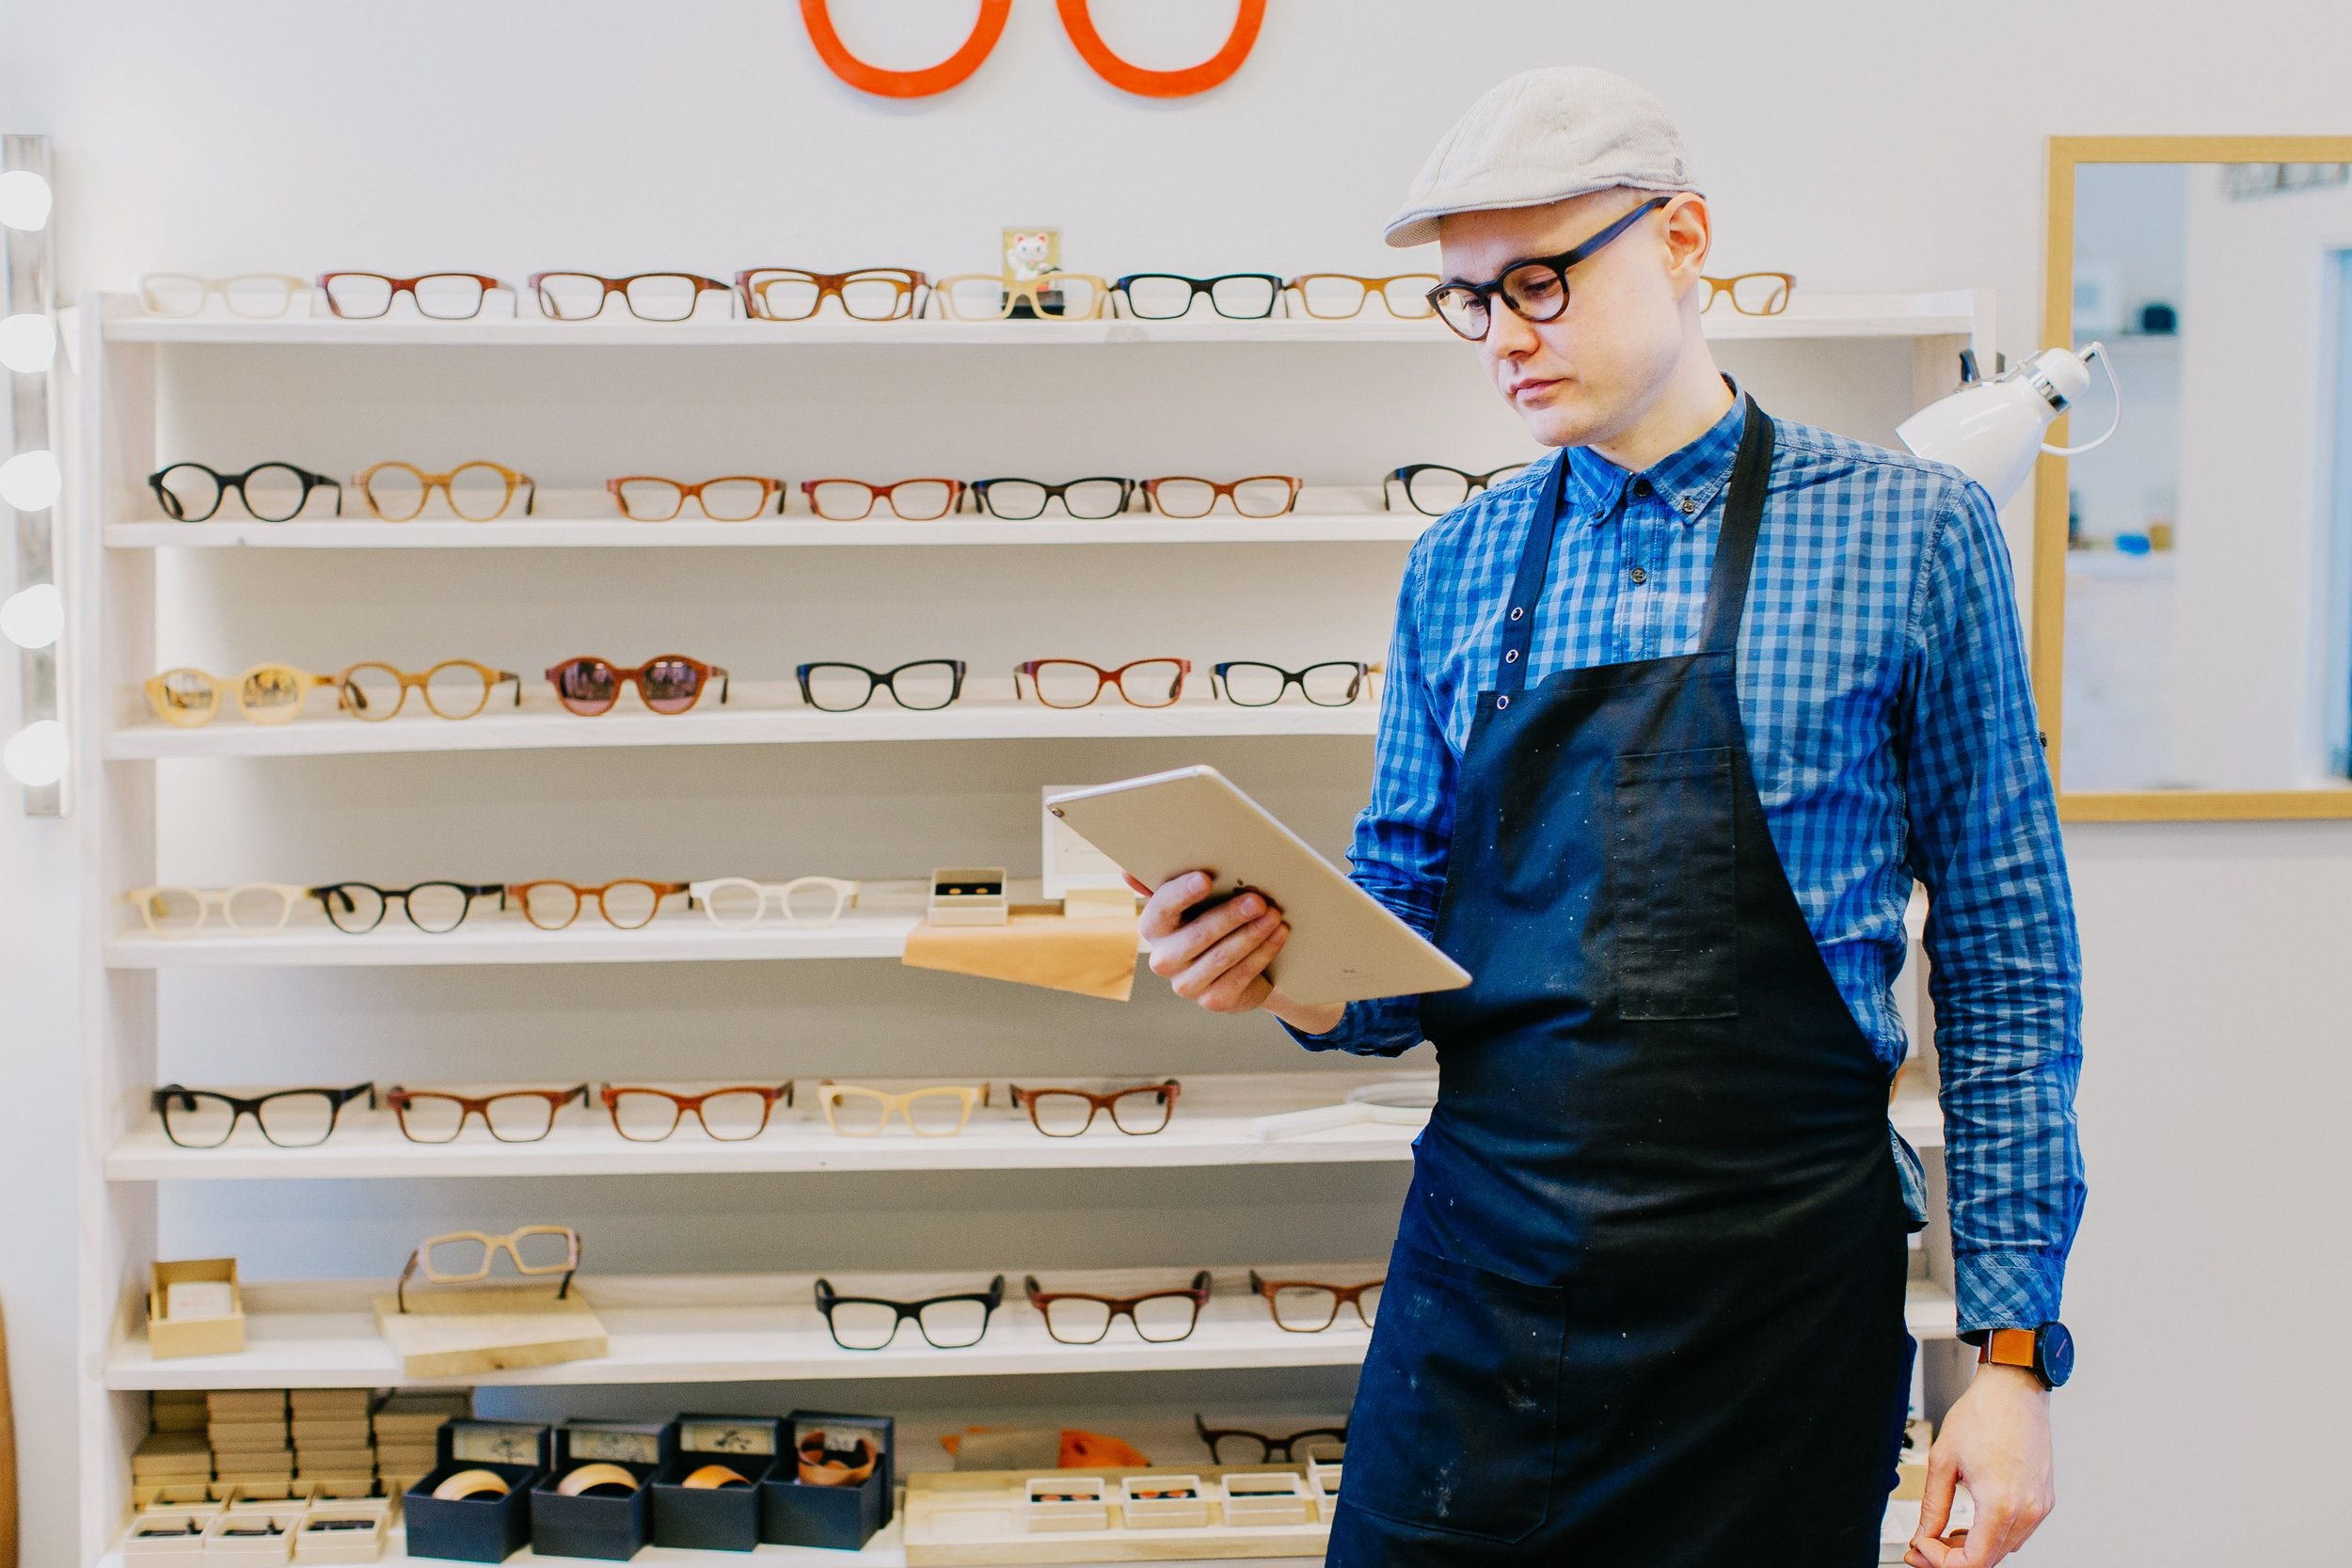 """Product making businesses like the guys at """"Framed"""" need to make sure their order fill rates are as high as possible. Their brand's success is tied to how reliable they are in delivering to customers."""